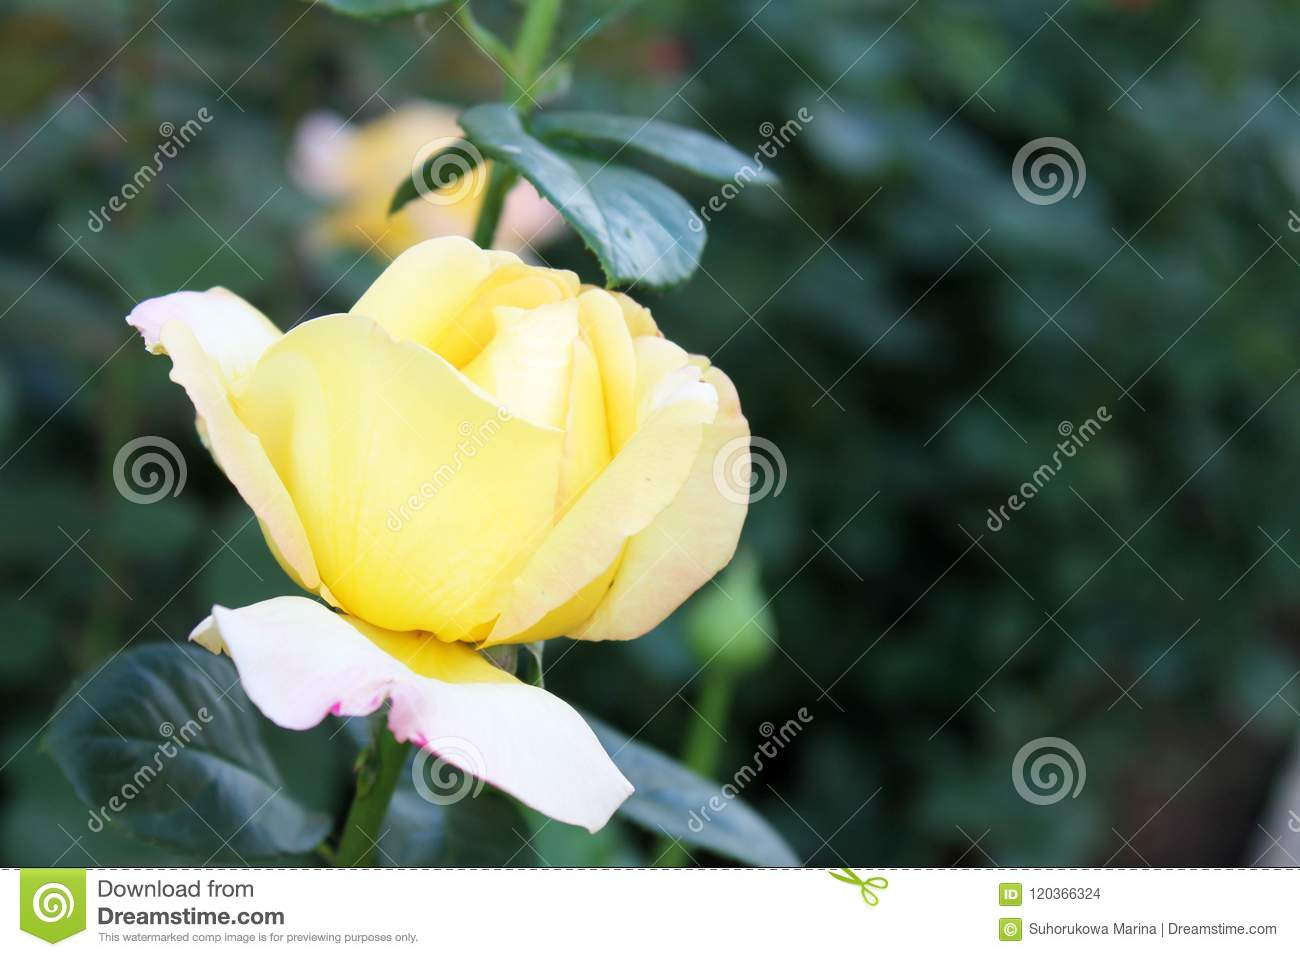 Beautiful rose flower backgrounds stock photo image of bride beautiful backgrounds of flowers roses yellow pink alleys of roses izmirmasajfo